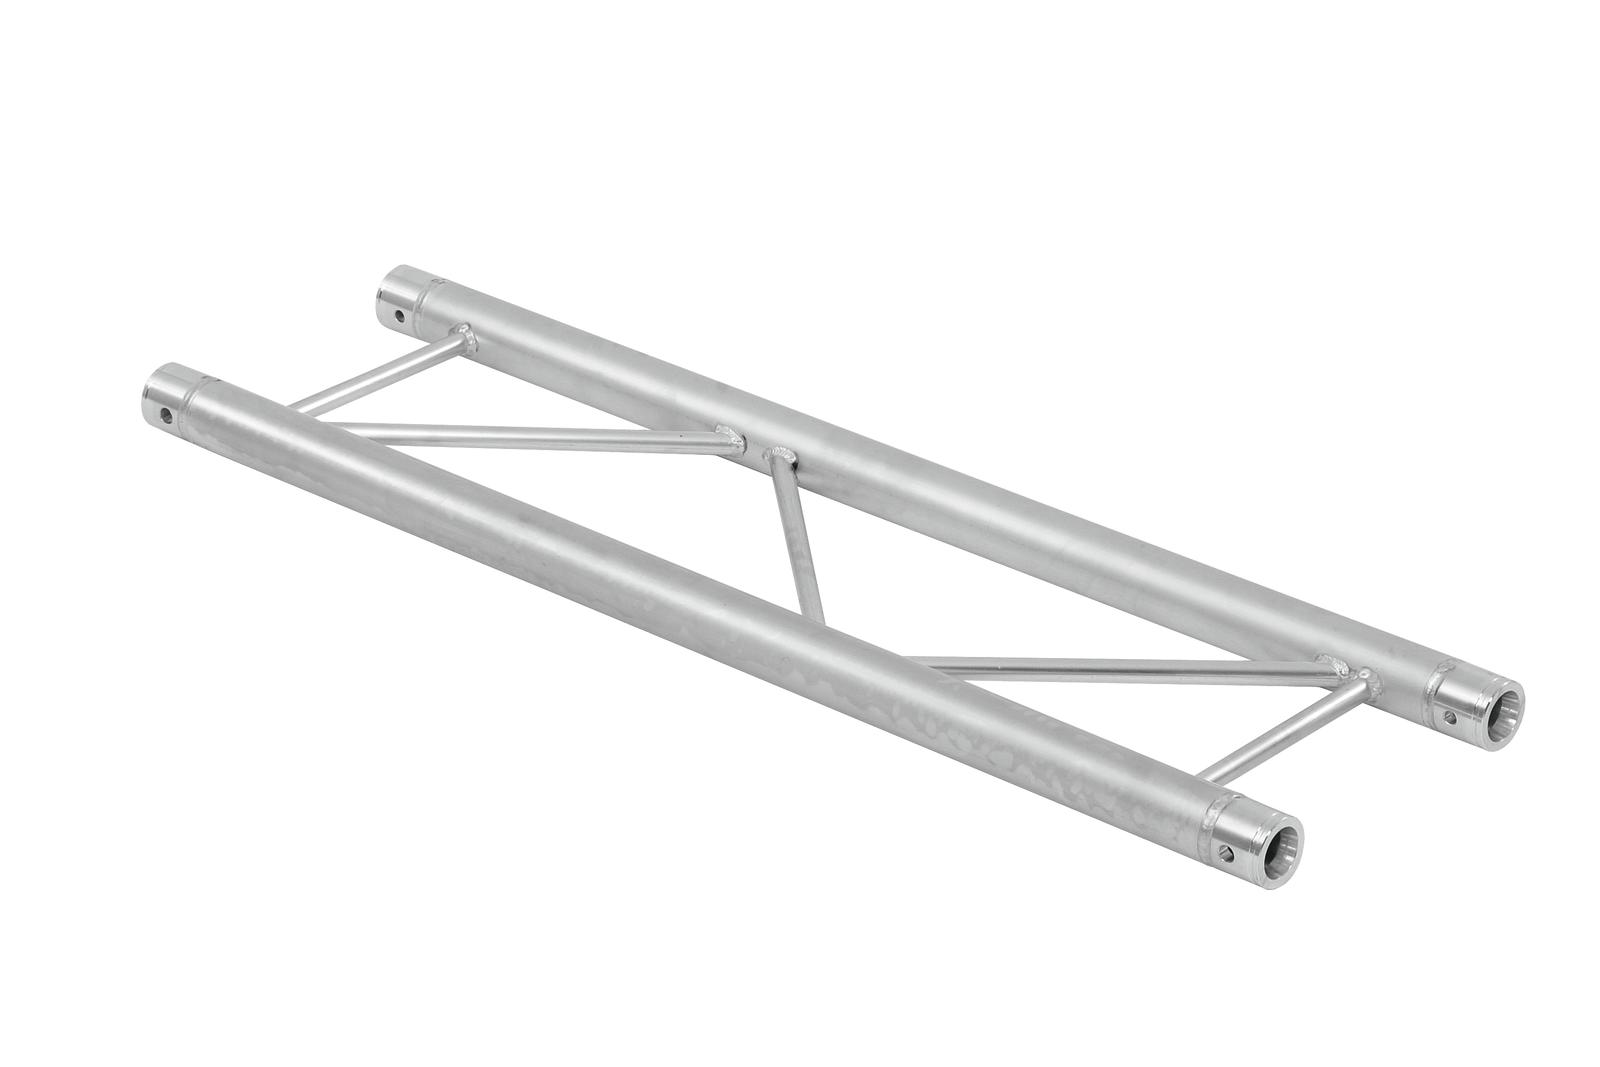 ALUTRUSS BILOCK E-GL22 3000 a 2 vie traverse